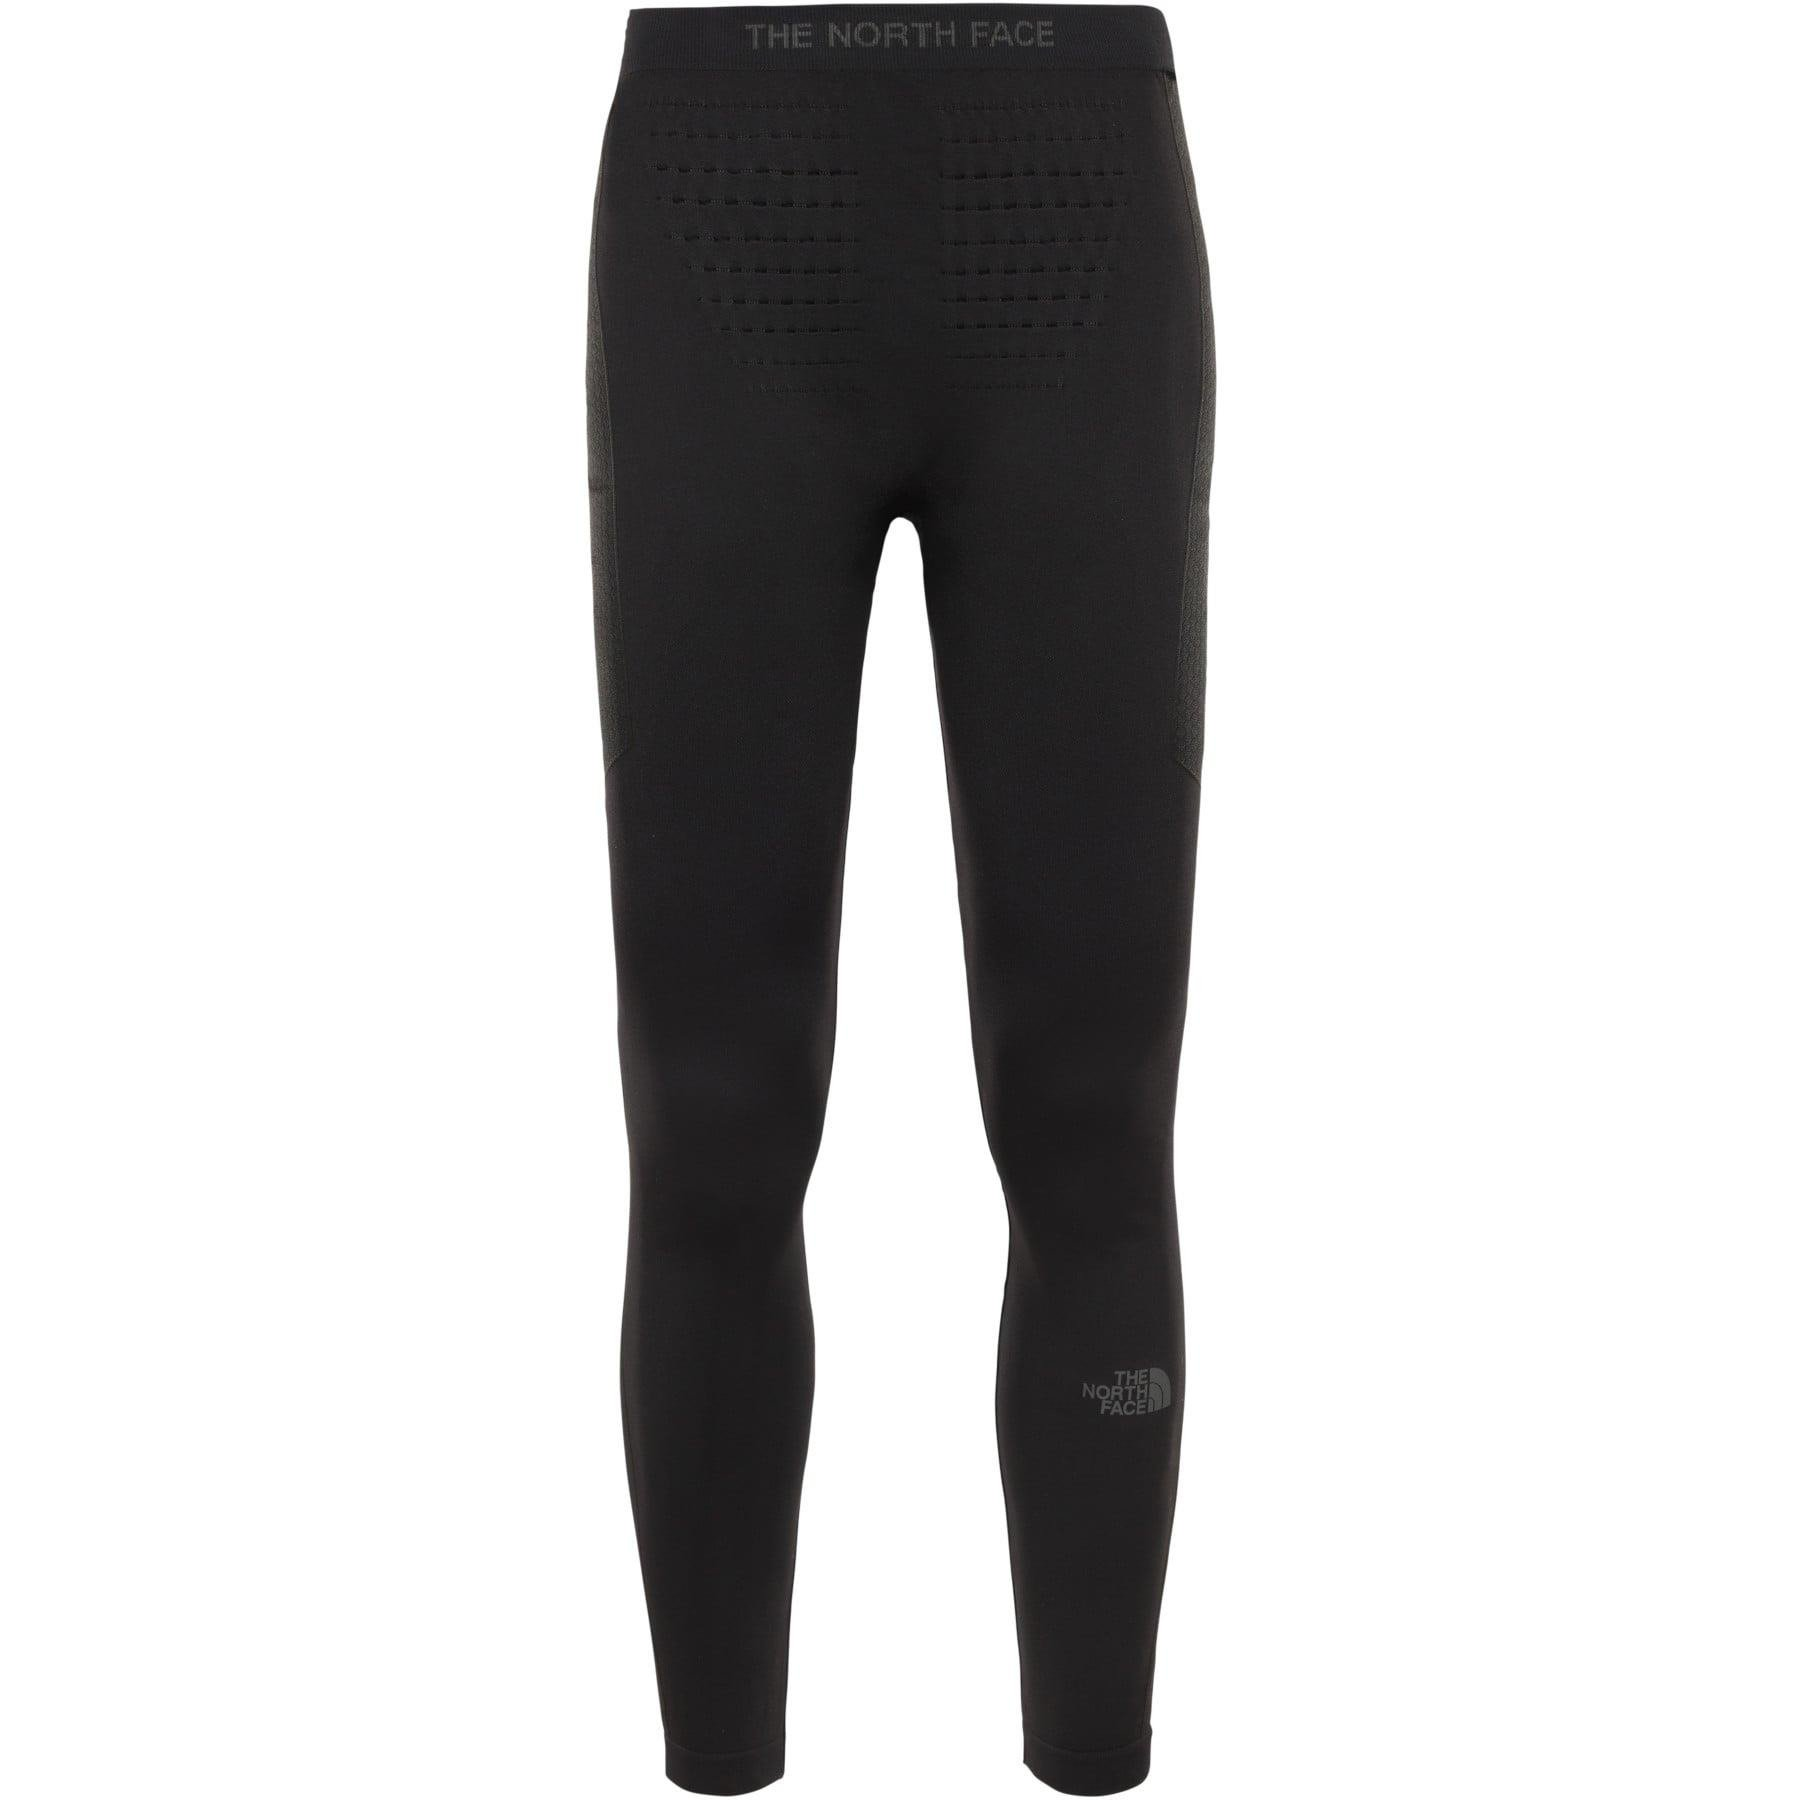 Legginsy termiczne The North Face Sport T93Y29KT0